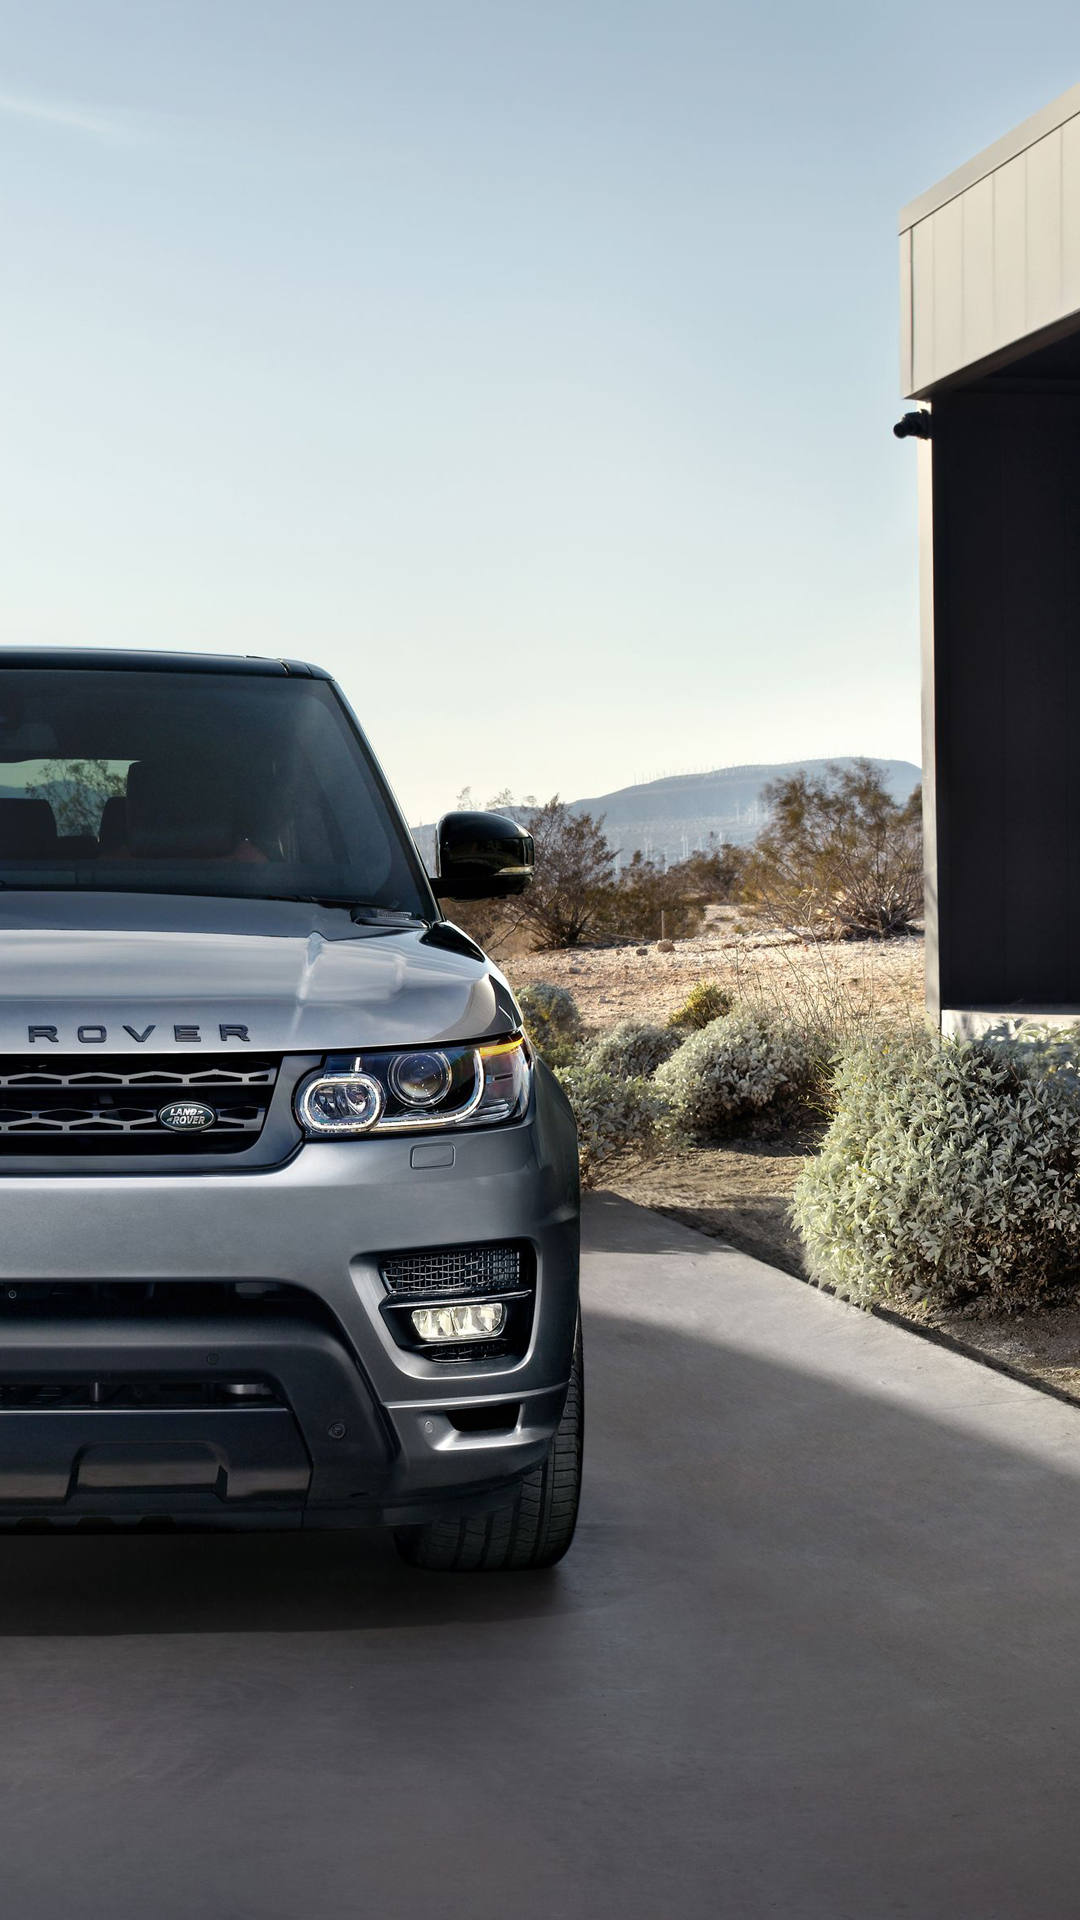 2014 Range Rover sport htc one wallpaper